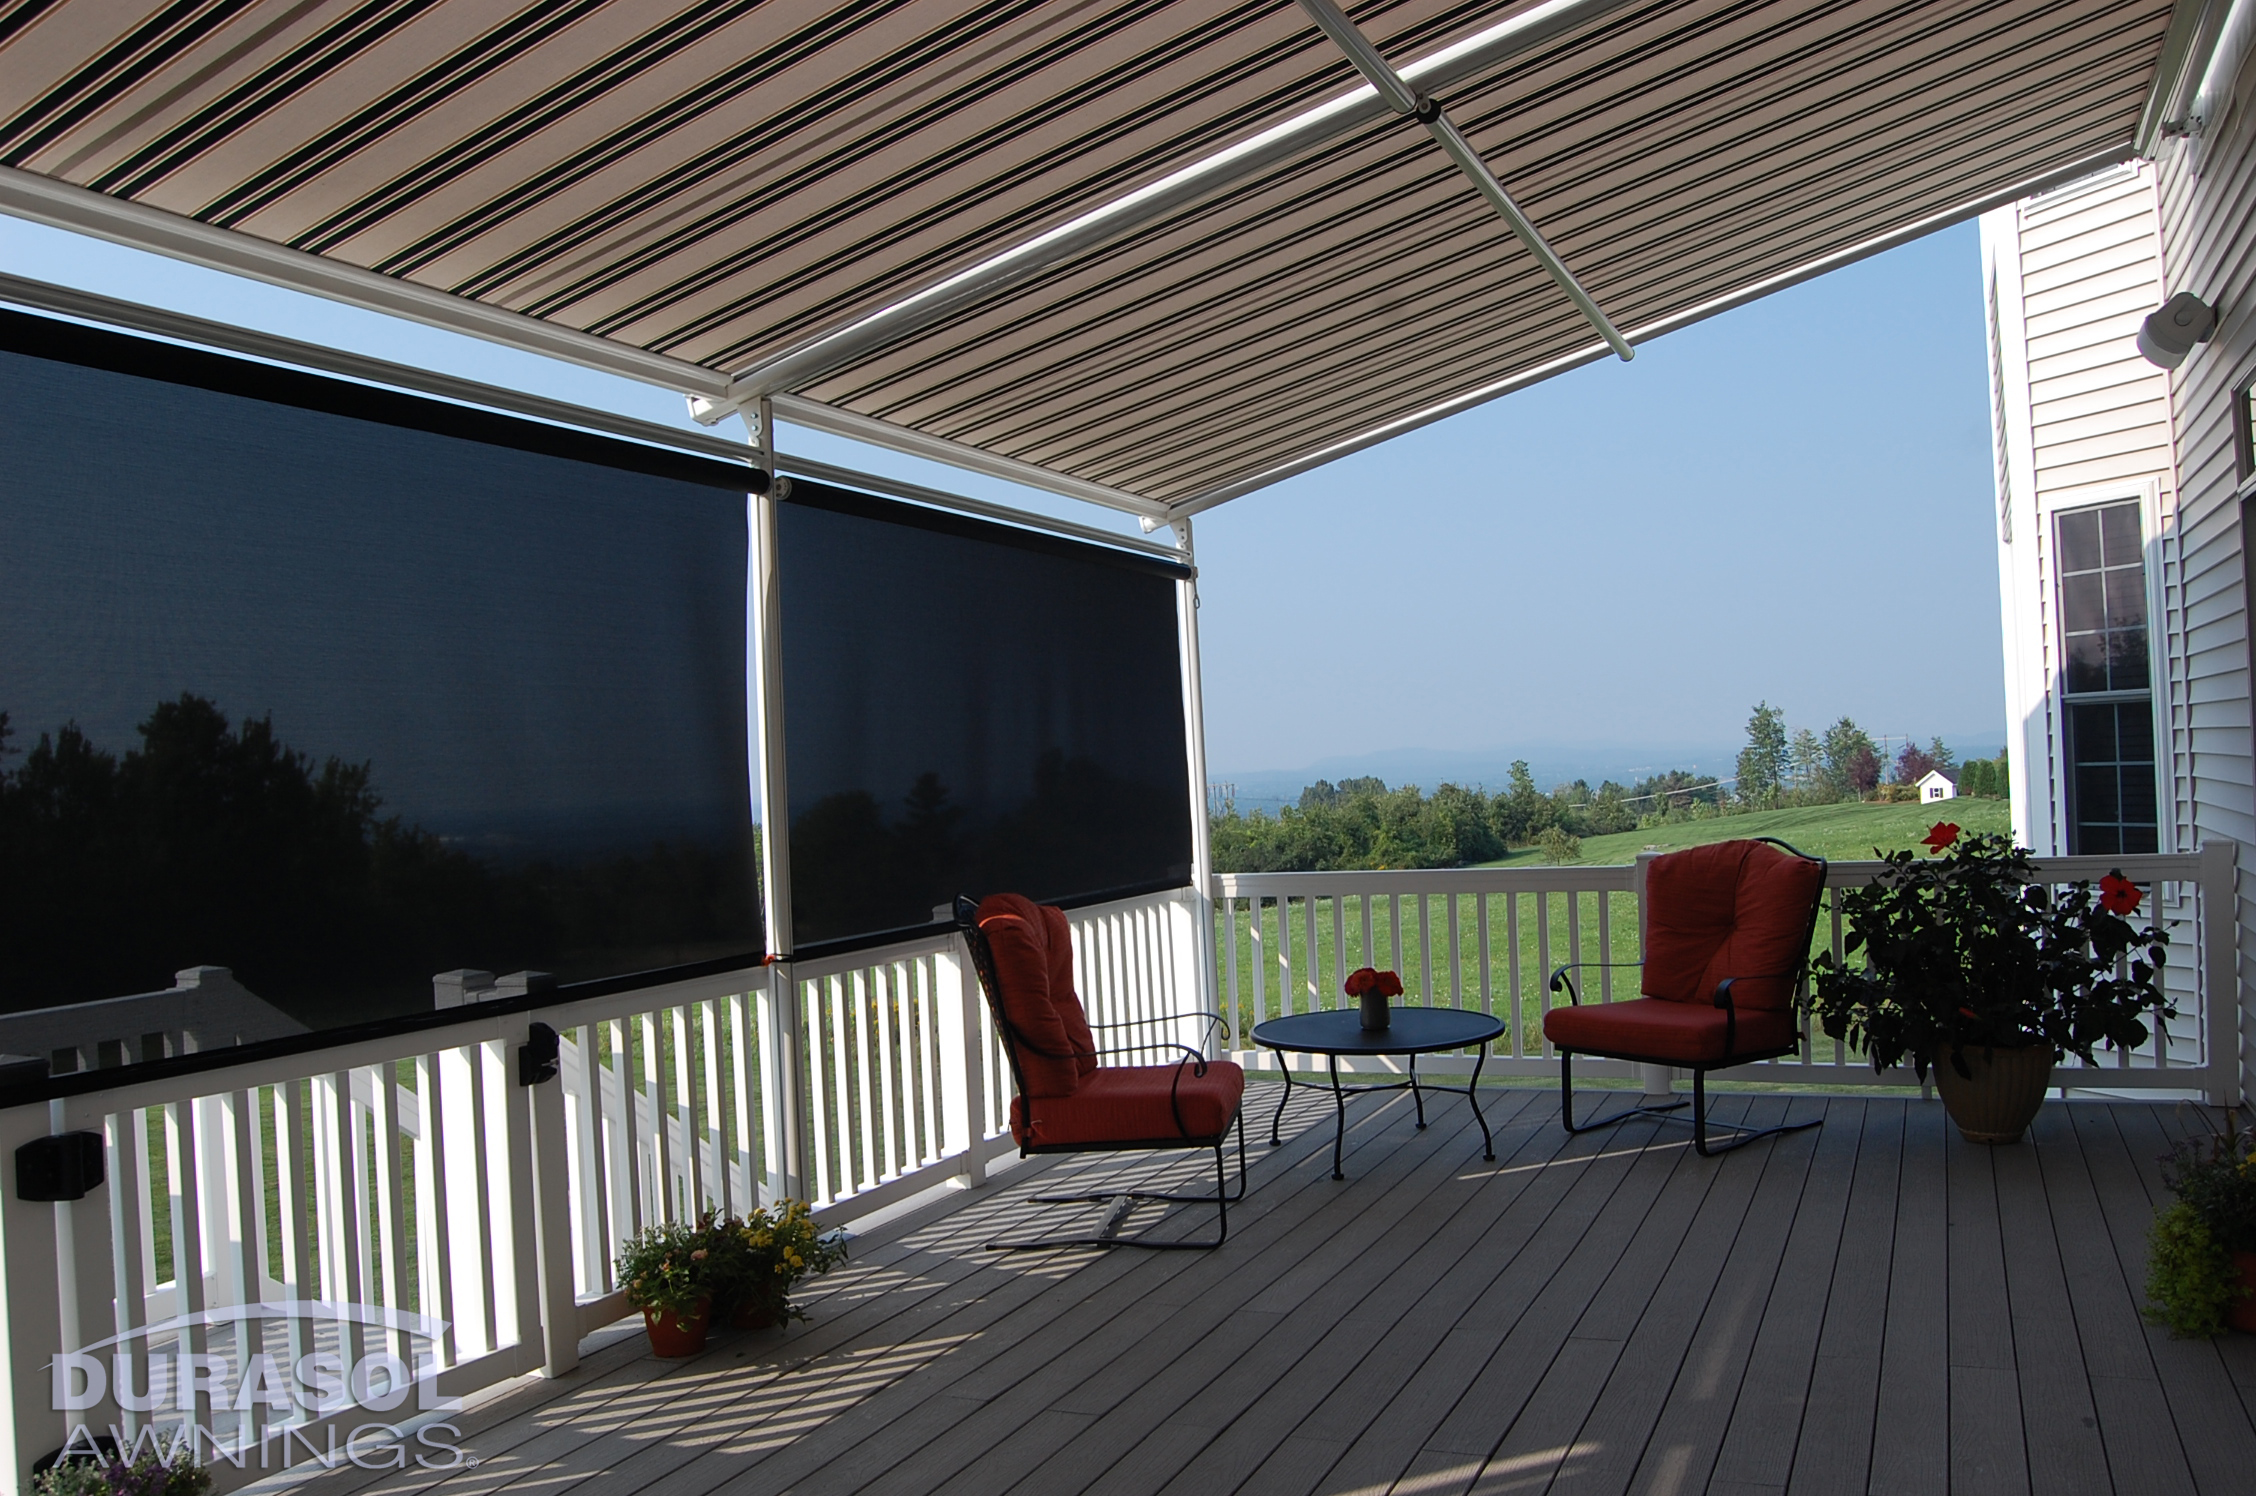 Exterior sun shades for windows - Click On Thumbnail To See Larger Image